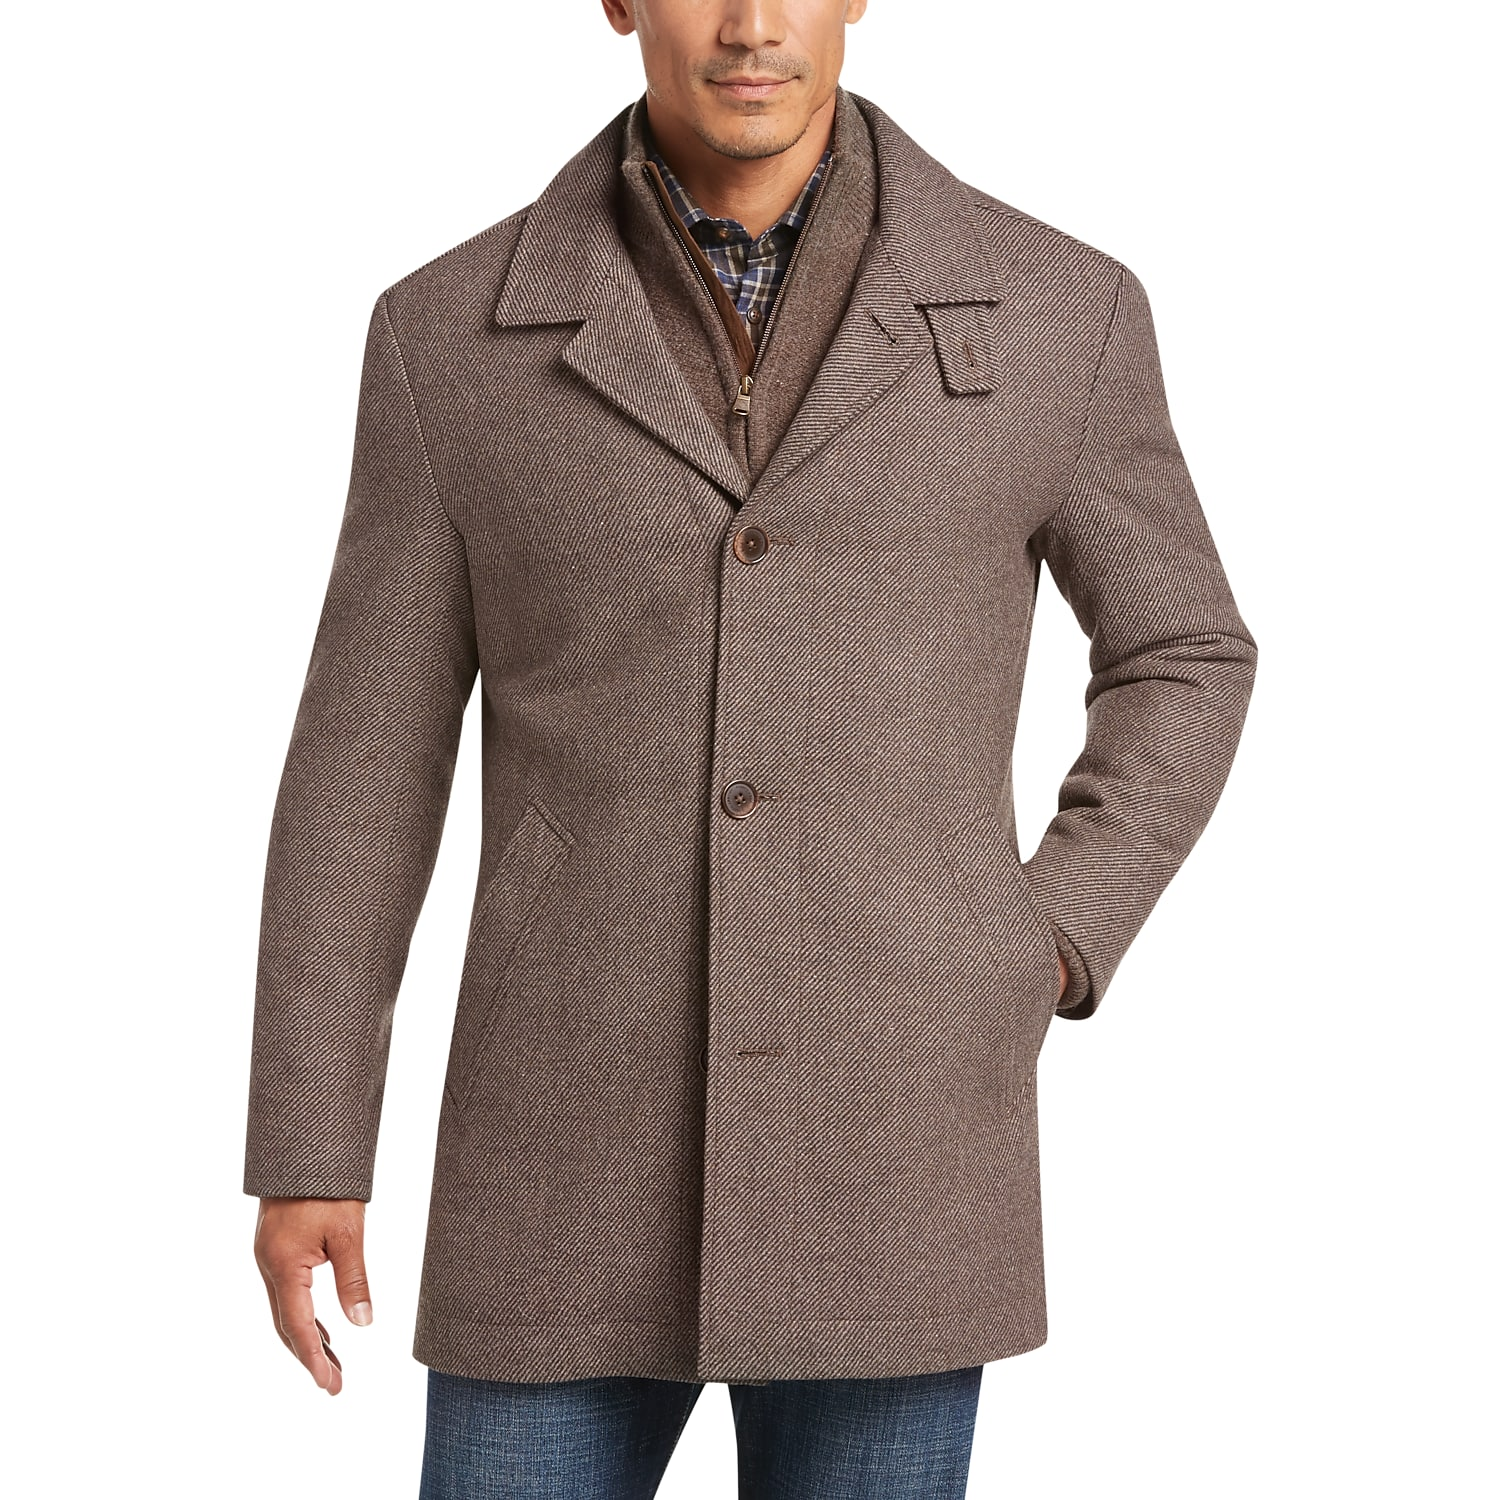 f8a5c908070b Mens Outerwear - Joseph Abboud Tan Modern Fit Twill Car Coat - Men s  Wearhouse